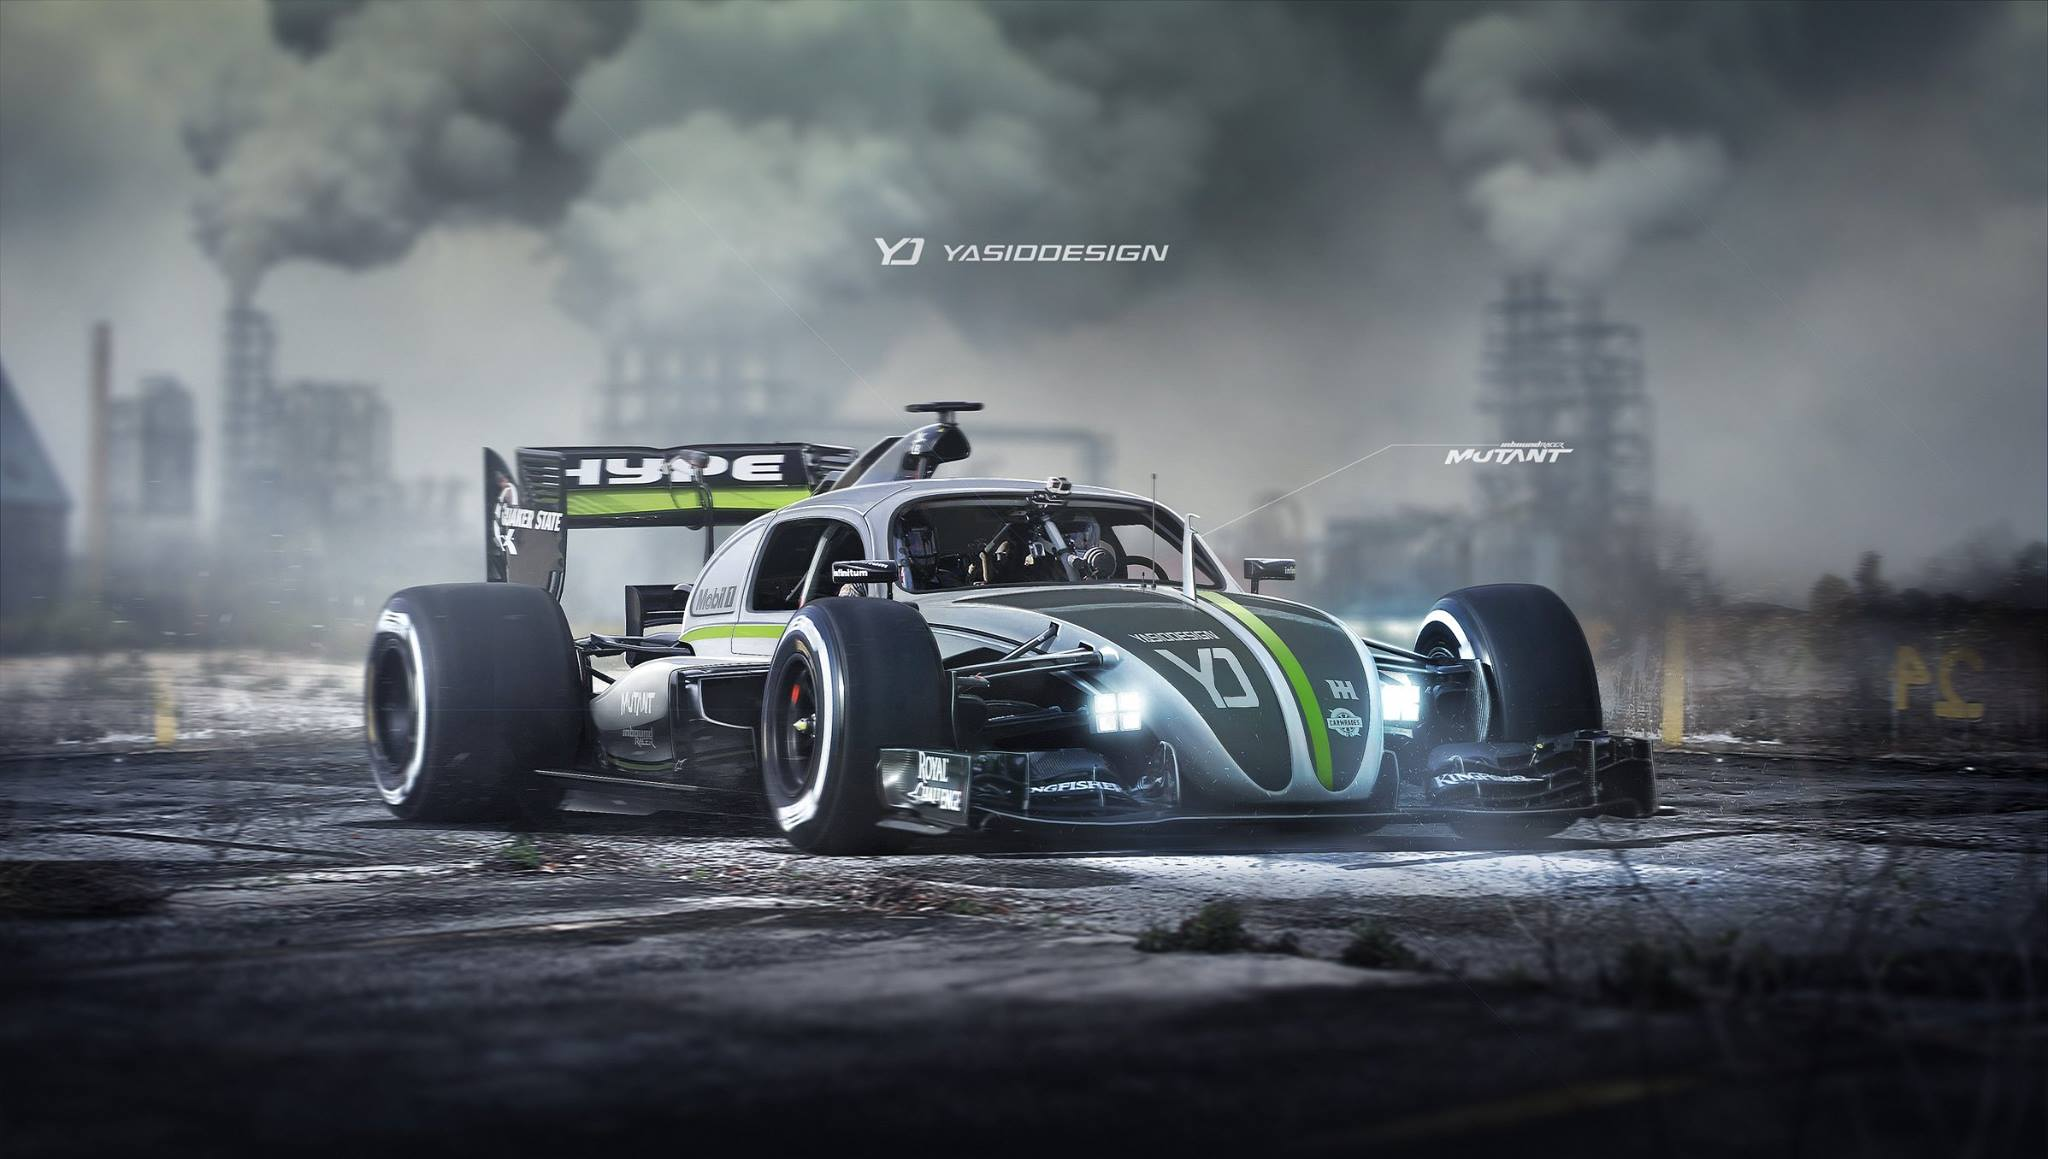 F1-Style Beetle – Could This Rendering Someday Come To Life - Featured